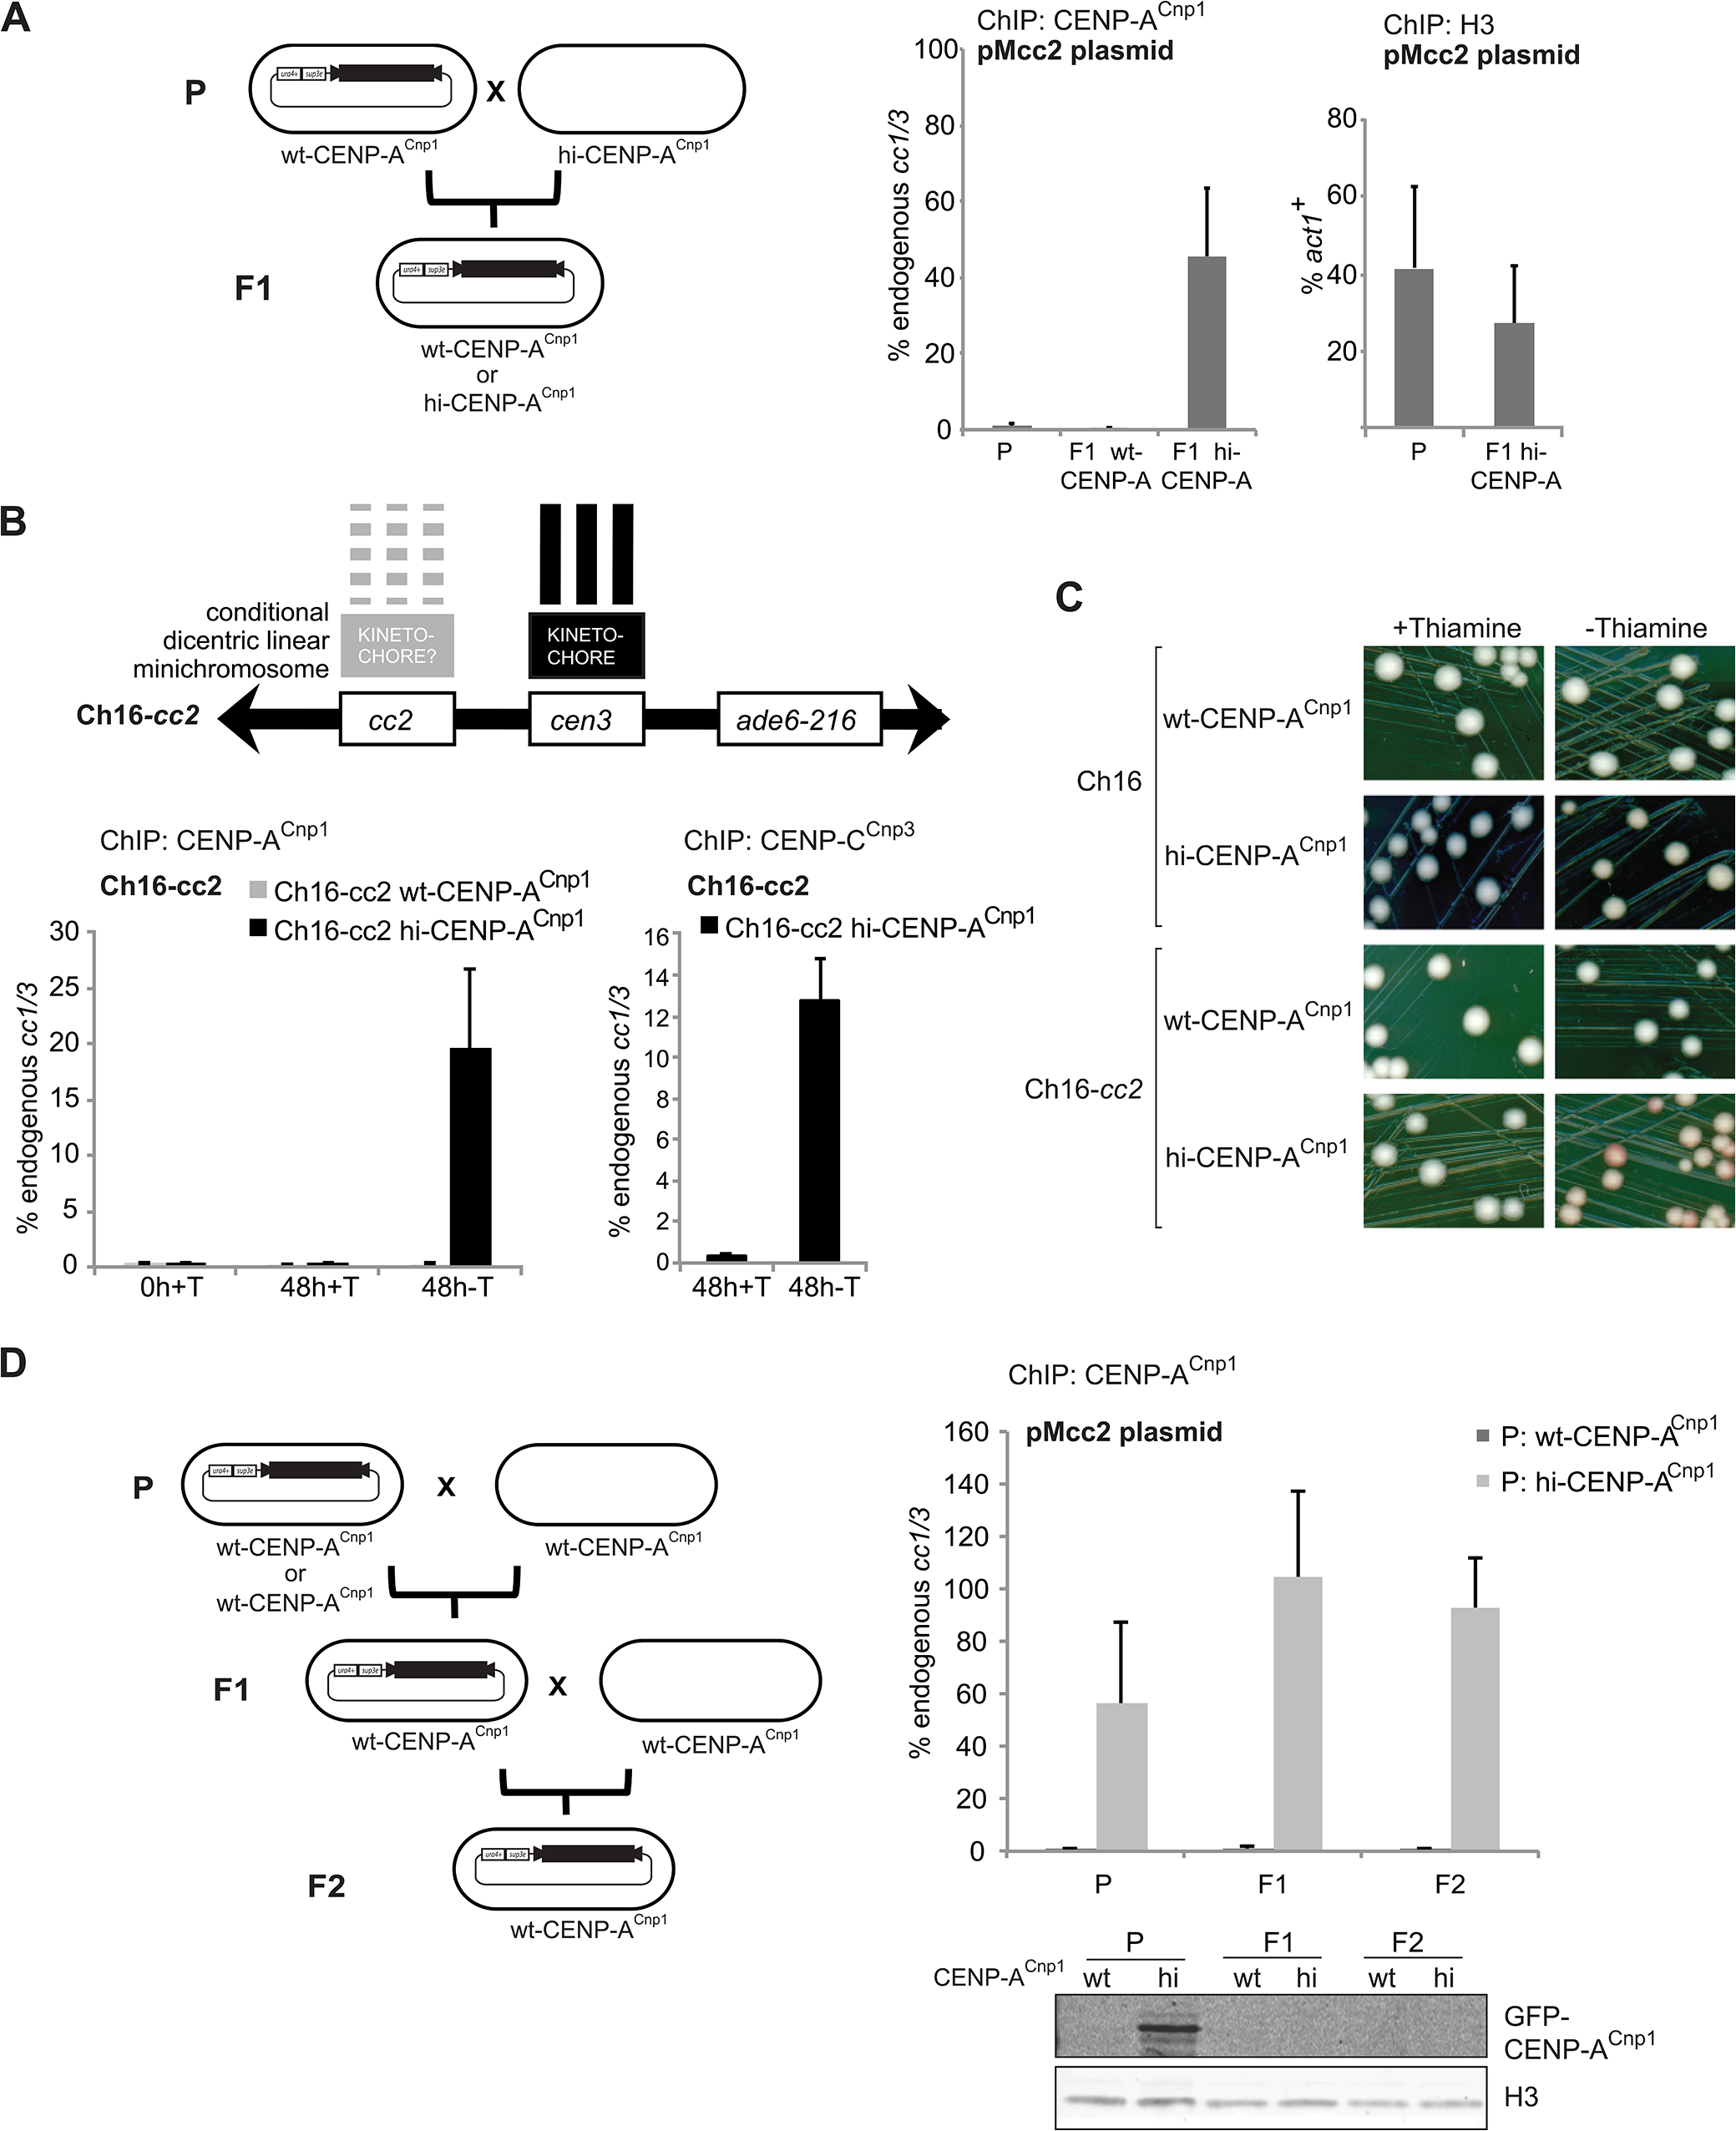 CENP-A<sup>Cnp1</sup> chromatin behaves as an epigenetic mark.